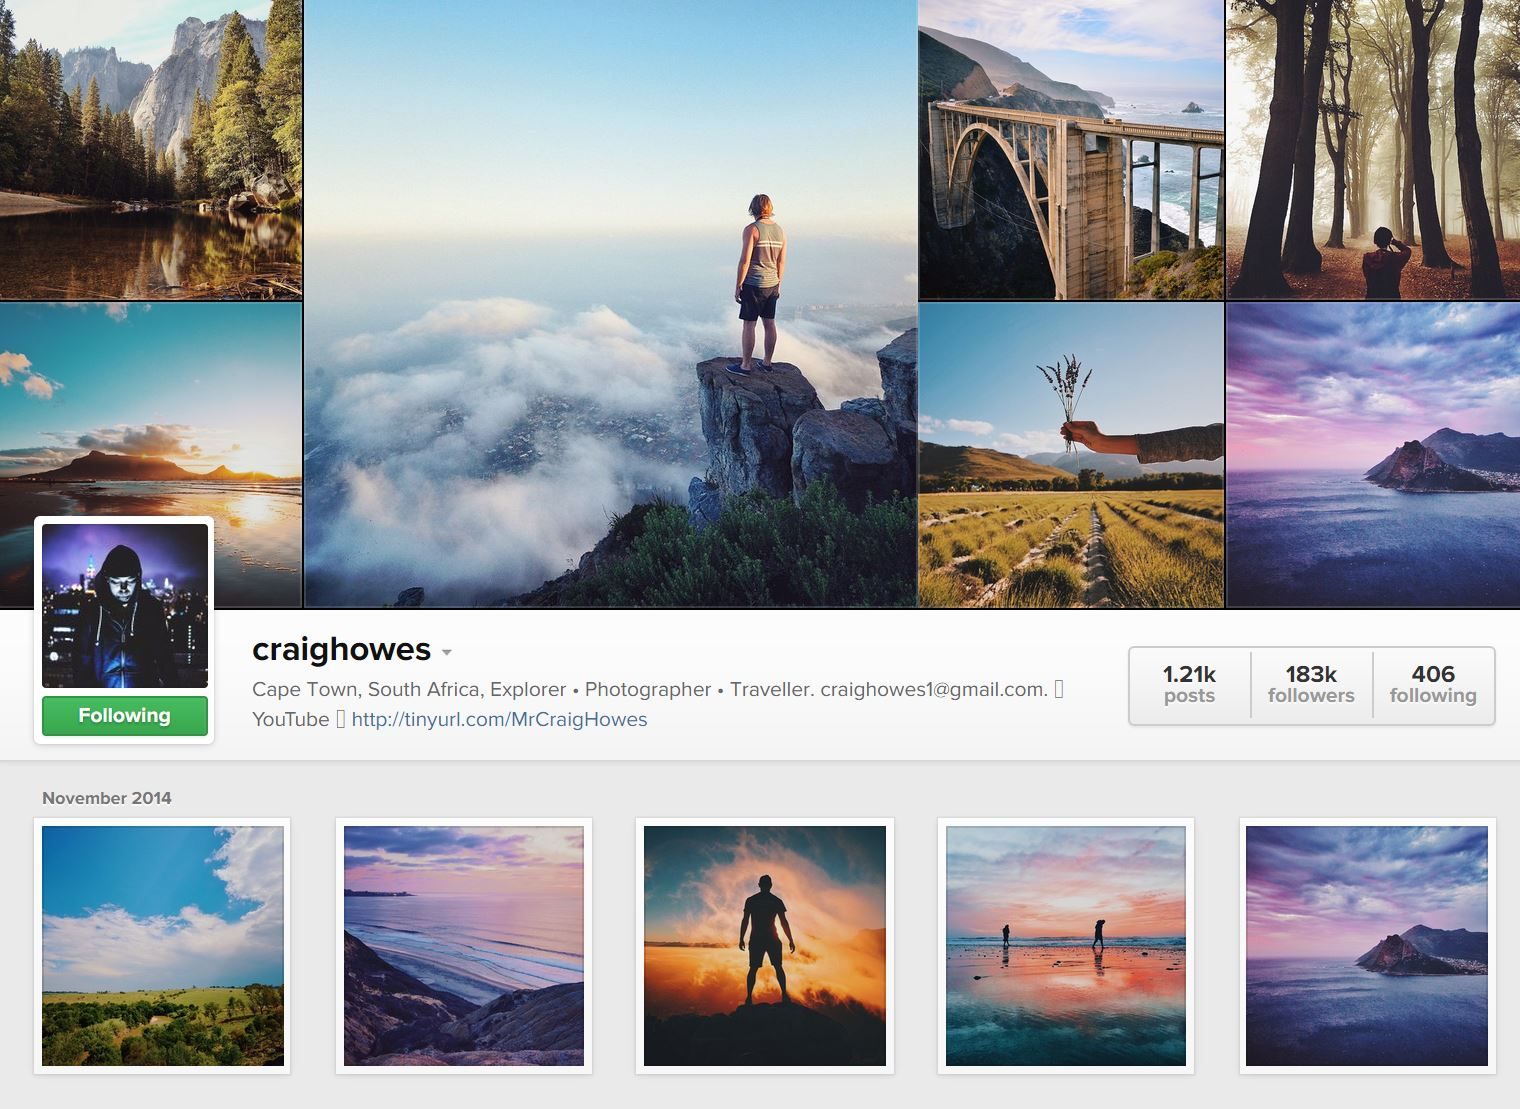 @craighowes